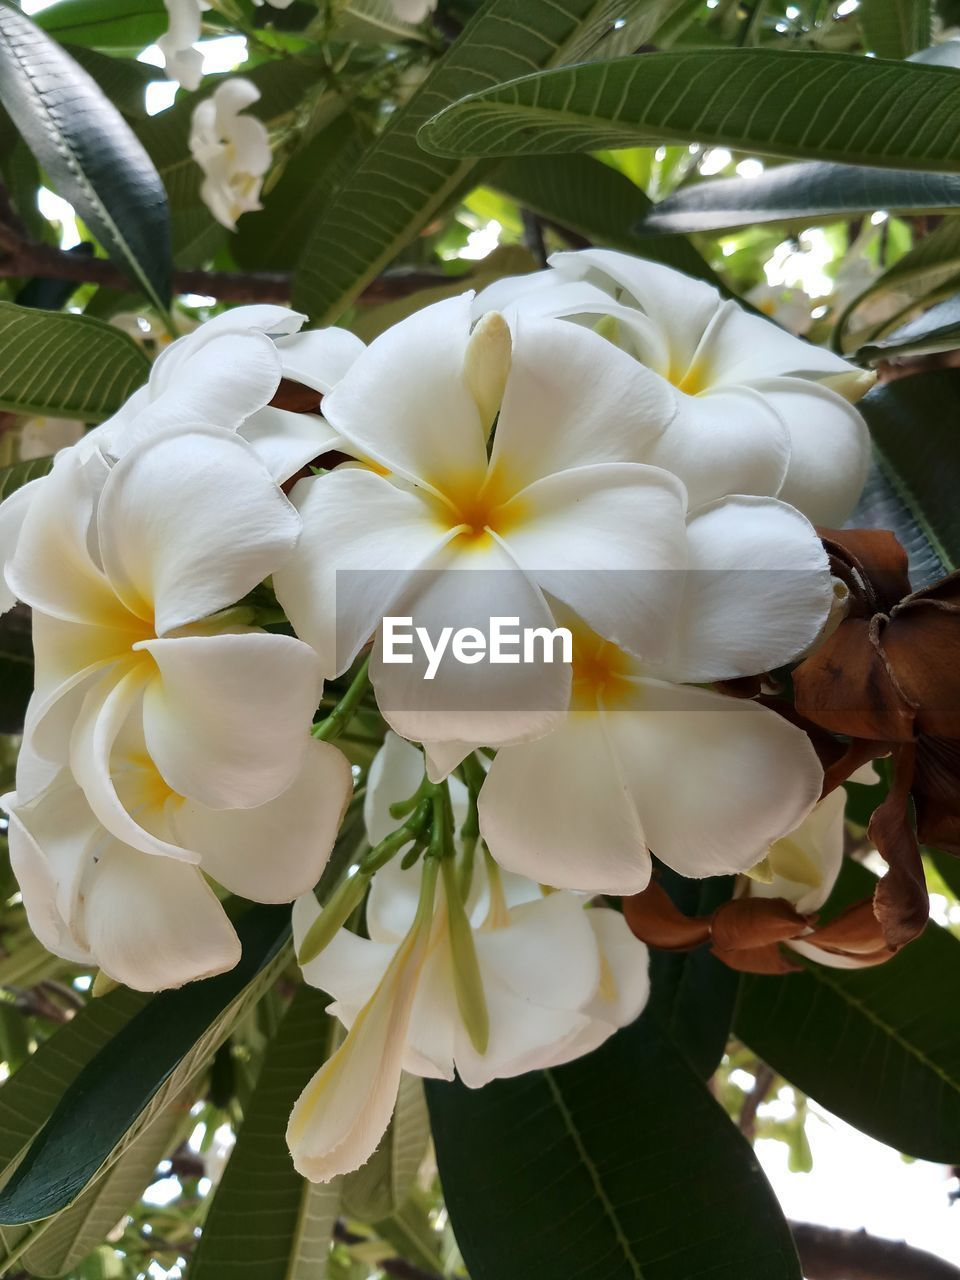 plant, flower, flowering plant, freshness, vulnerability, fragility, beauty in nature, close-up, white color, petal, flower head, growth, nature, inflorescence, day, focus on foreground, outdoors, leaf, plant part, people